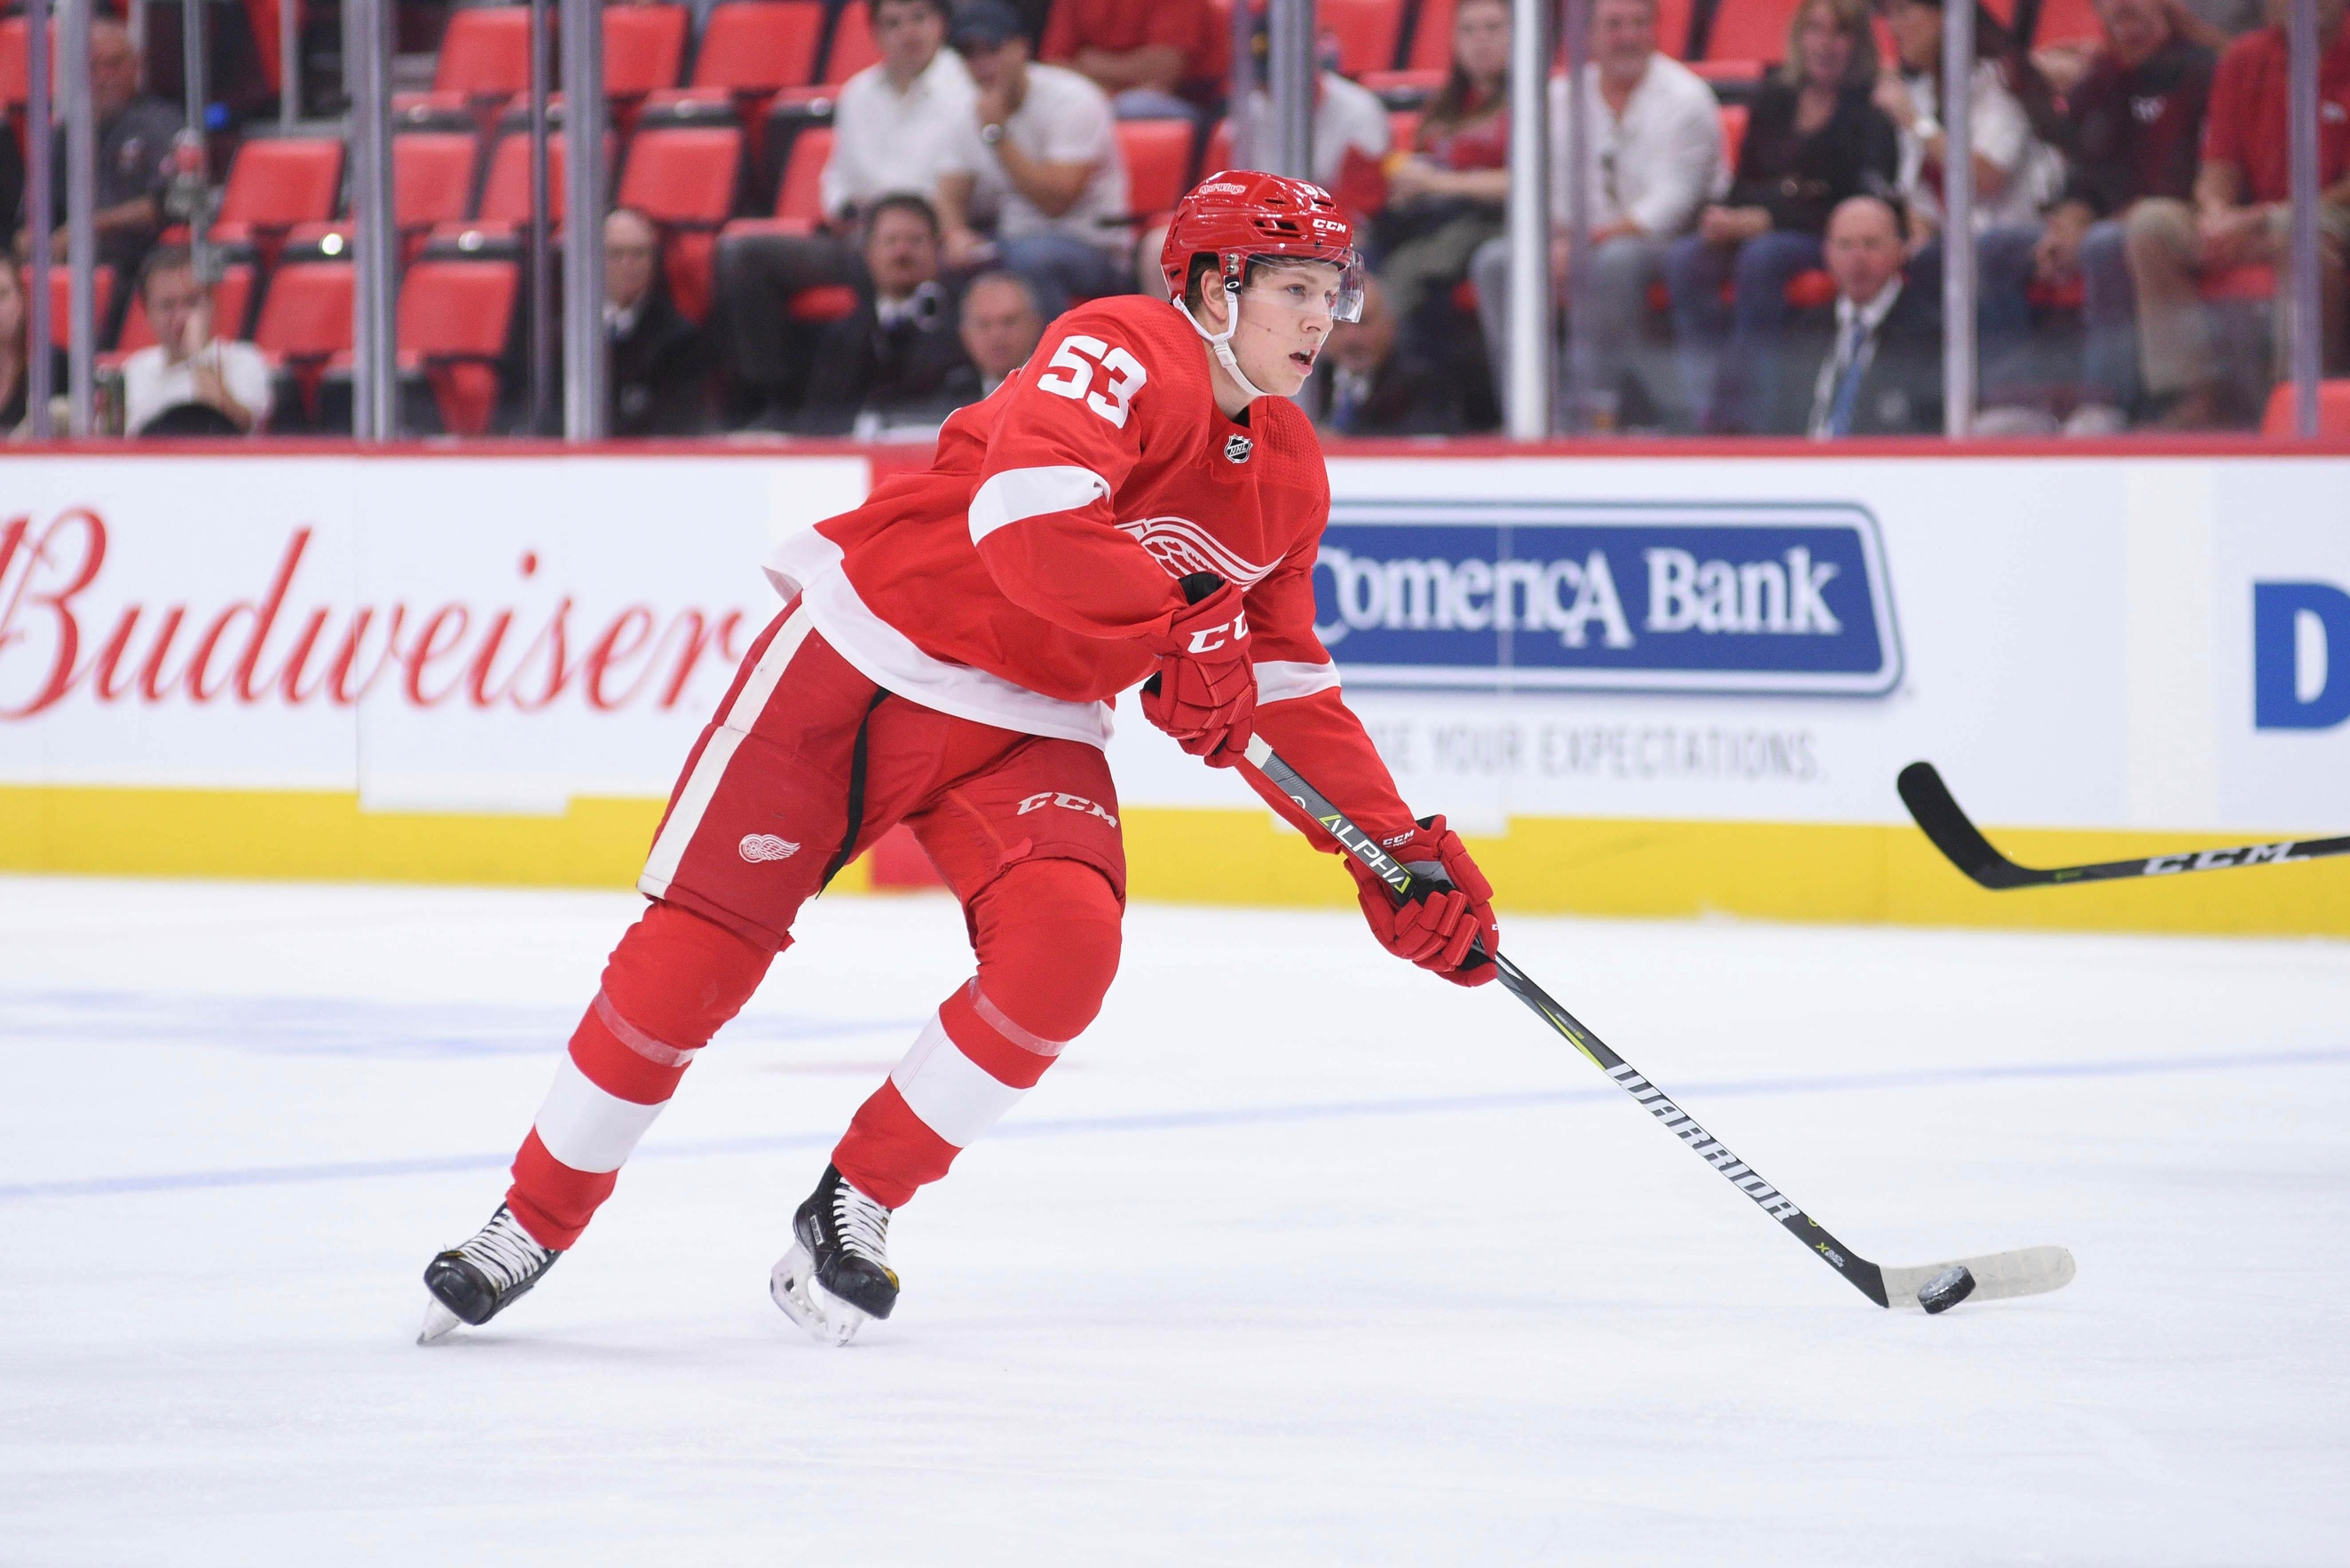 d3440979b The Grind Line: Detroit Red Wings Rebuild & Prospects